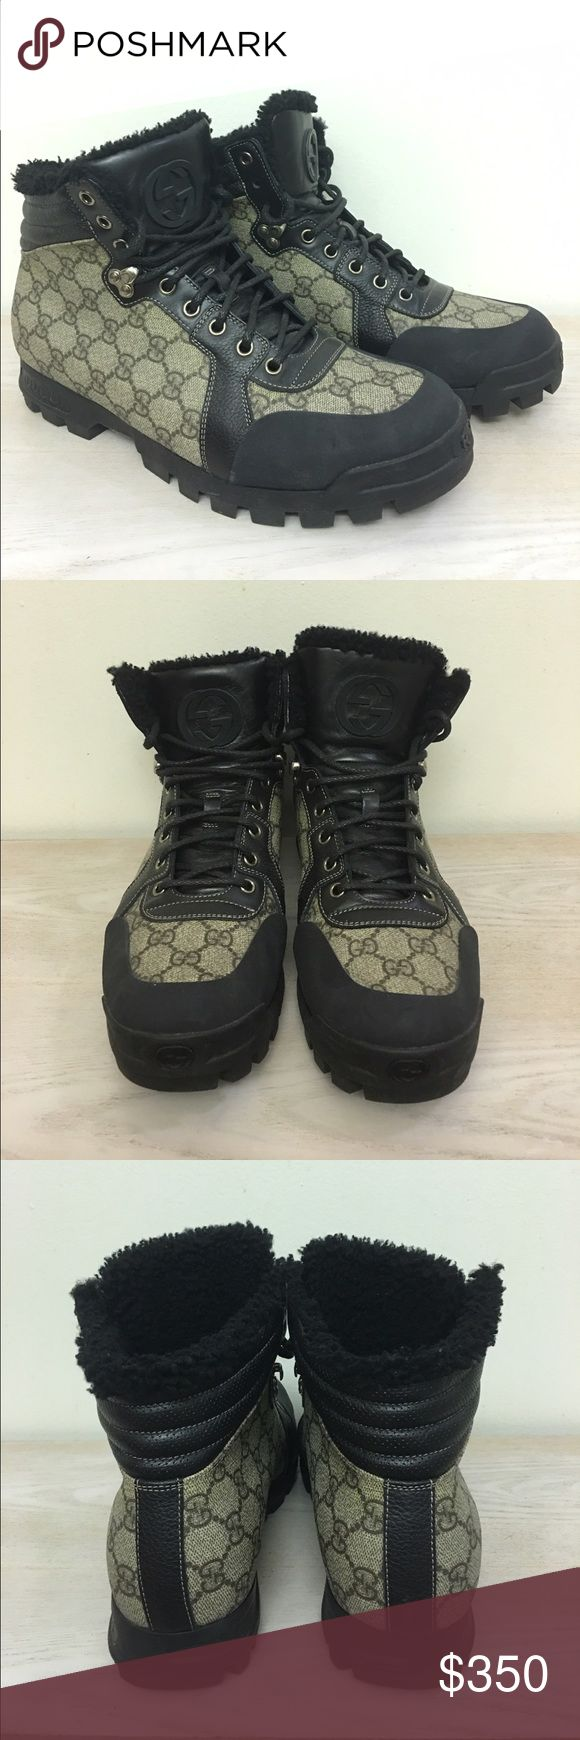 Gucci men's boots These boots are a men's size 8 which is equivalent to a men's US size 9. My boyfriend purchased a ton of Gucci boots and ended up not using most of them. These are in perfect condition! Gucci Shoes Boots